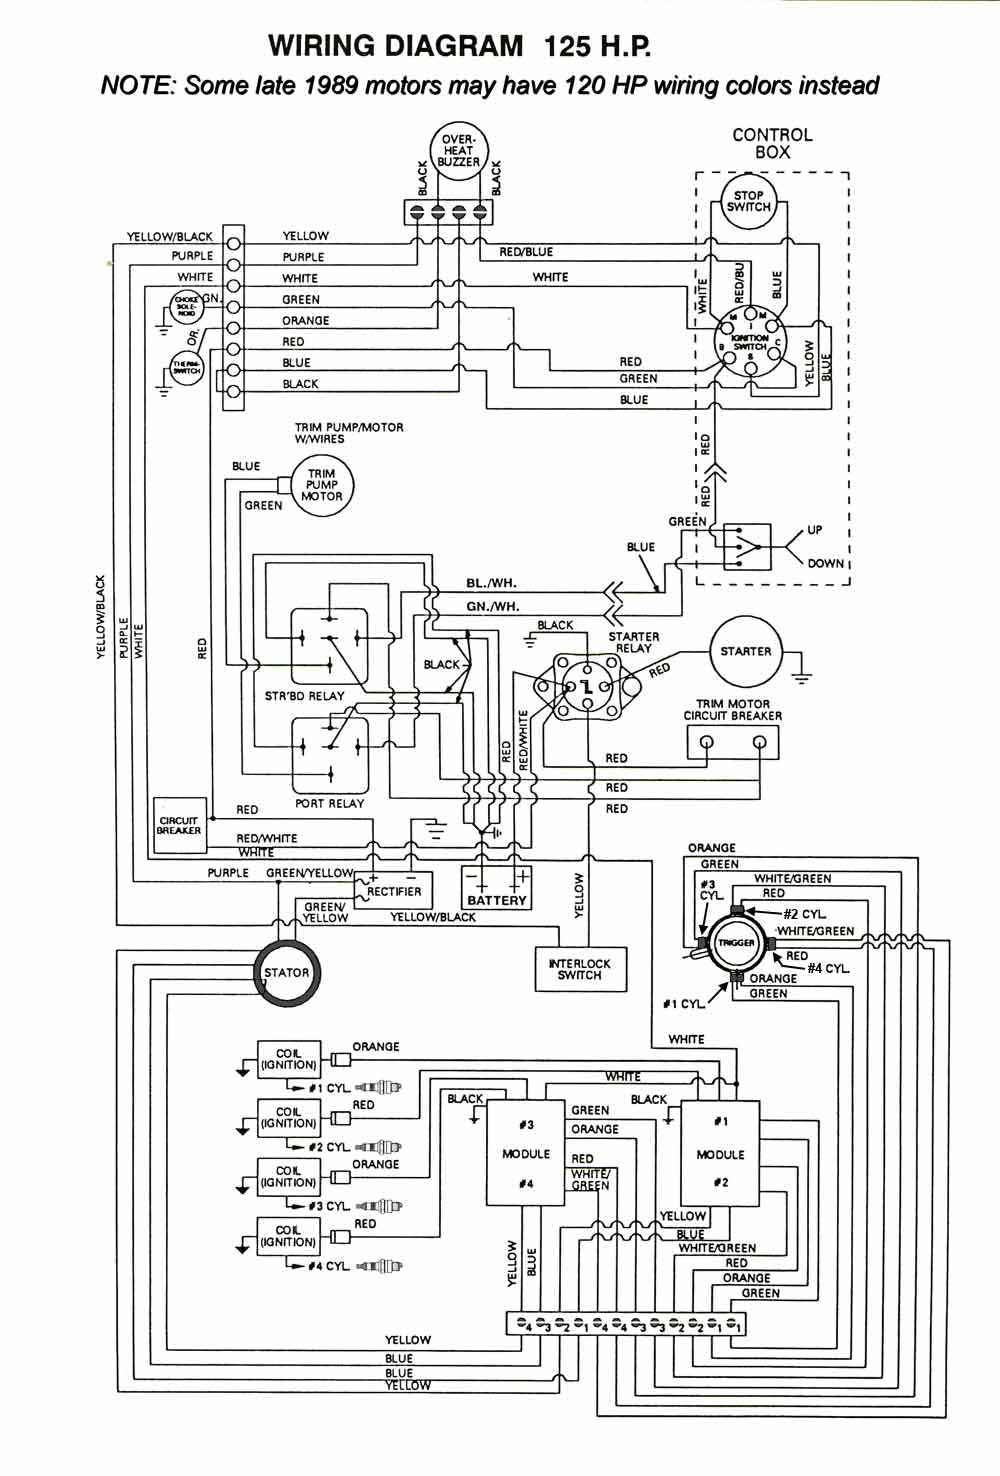 bayliner wiring harness installation all about repair and wiring bayliner wiring harness installation force ignition switch wiring diagram nilzanet 125hp thru89 eng force ignition